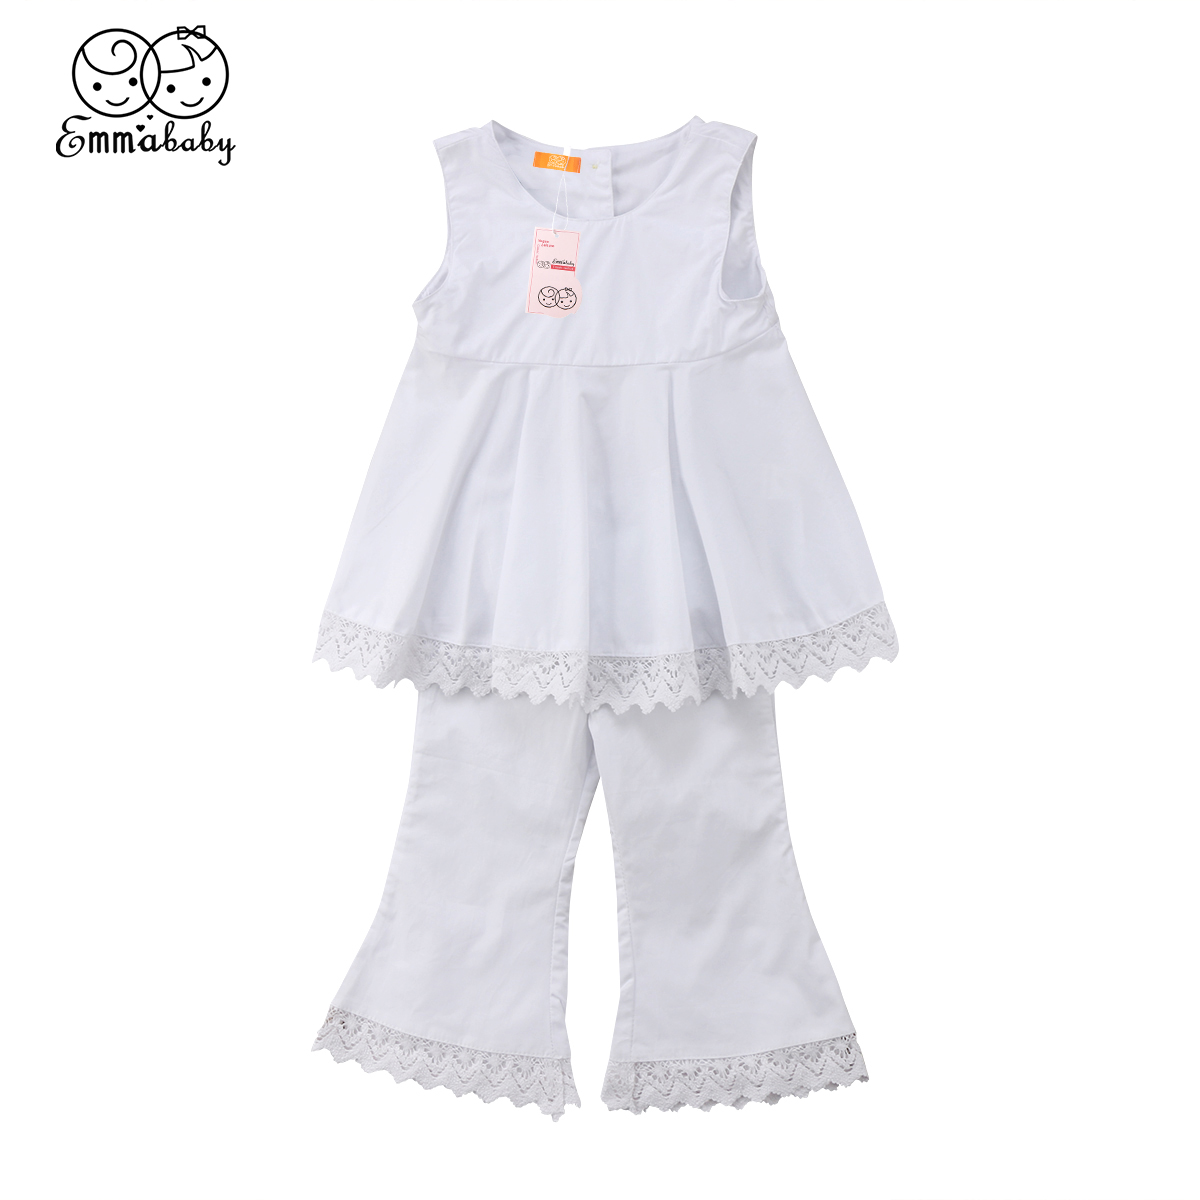 2018 new summer lace clothes set Newborn Kid Baby Girl sleeveless white lace Vest Dress Tops + Long flare Pants 2pcs outfit Set 2pcs children outfit clothes kids baby girl off shoulder cotton ruffled sleeve tops striped t shirt blue denim jeans sunsuit set